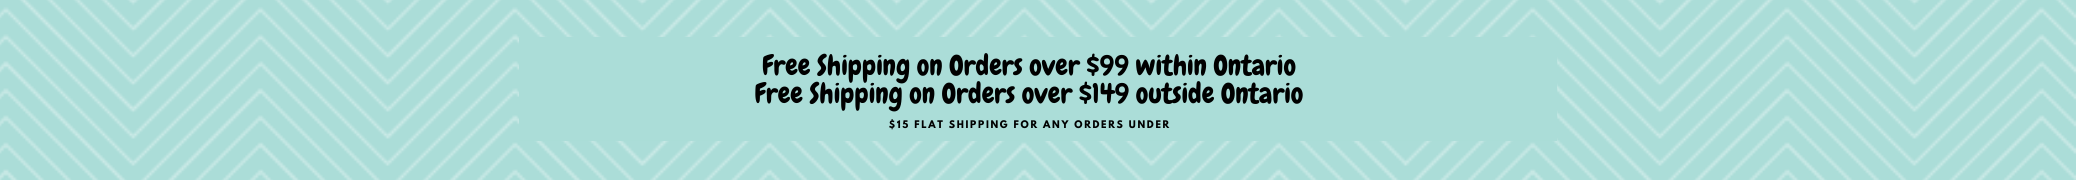 copy-of-welcome-shipping-store-header.png